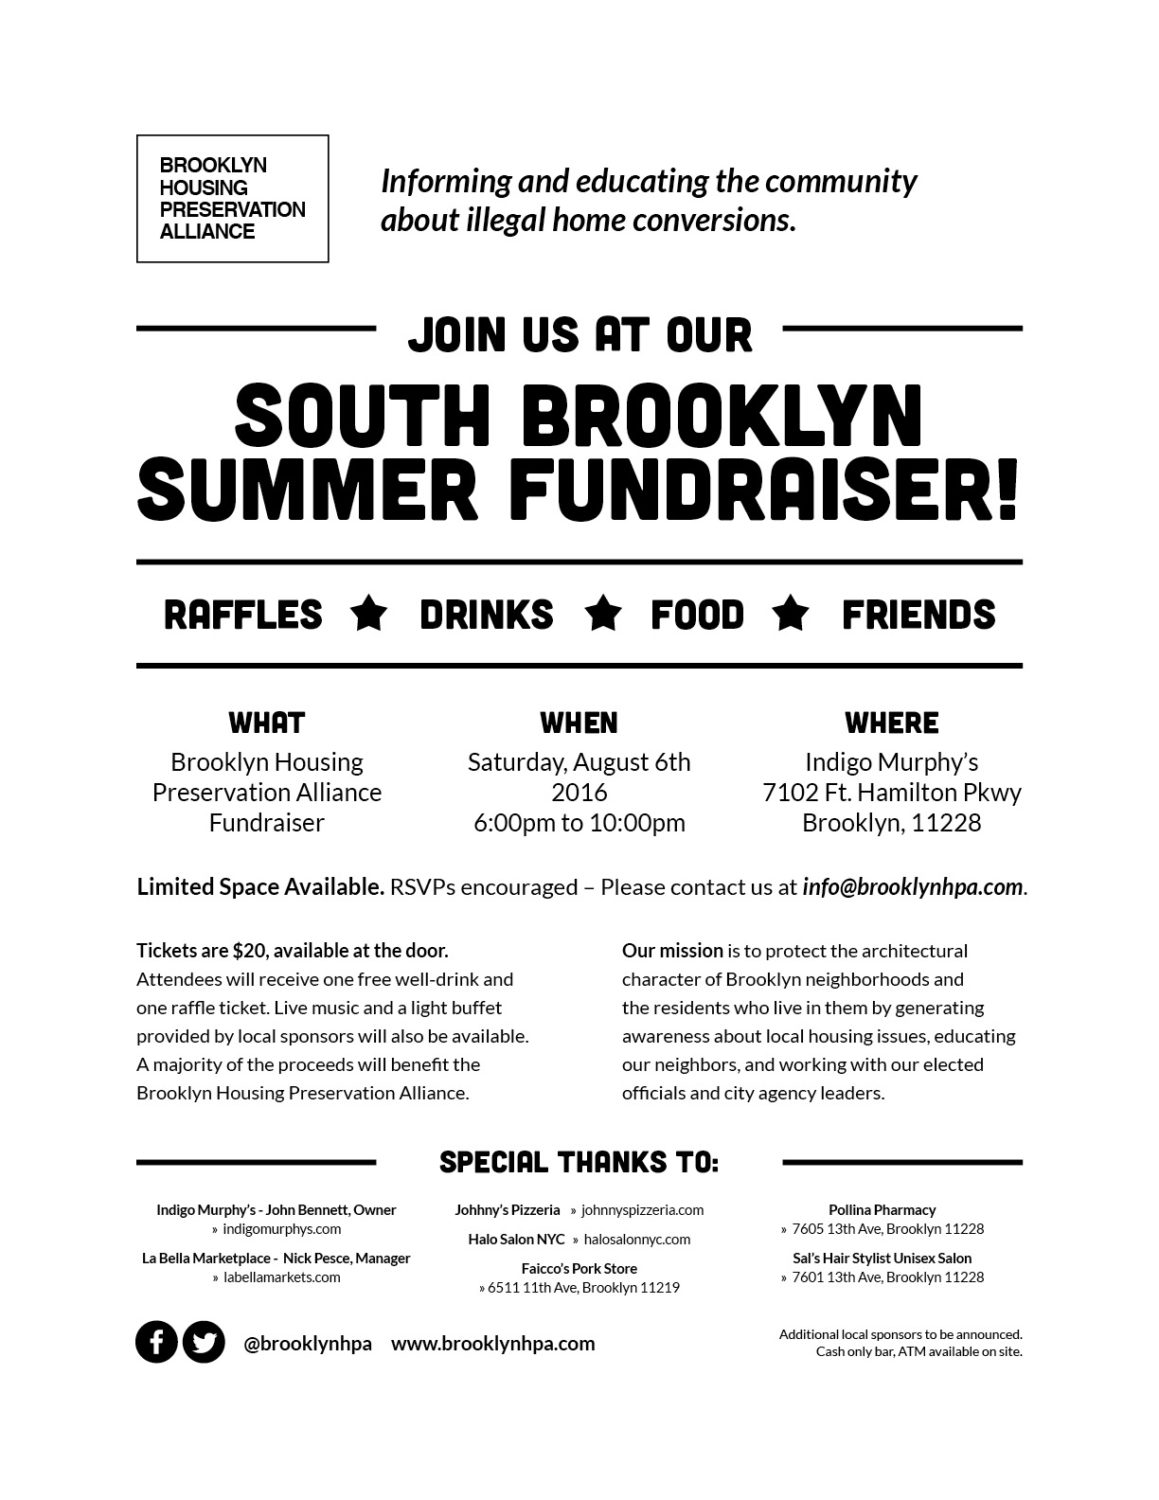 Brooklyn Housing Preservation Alliance August 2016 Fundraiser Flyer